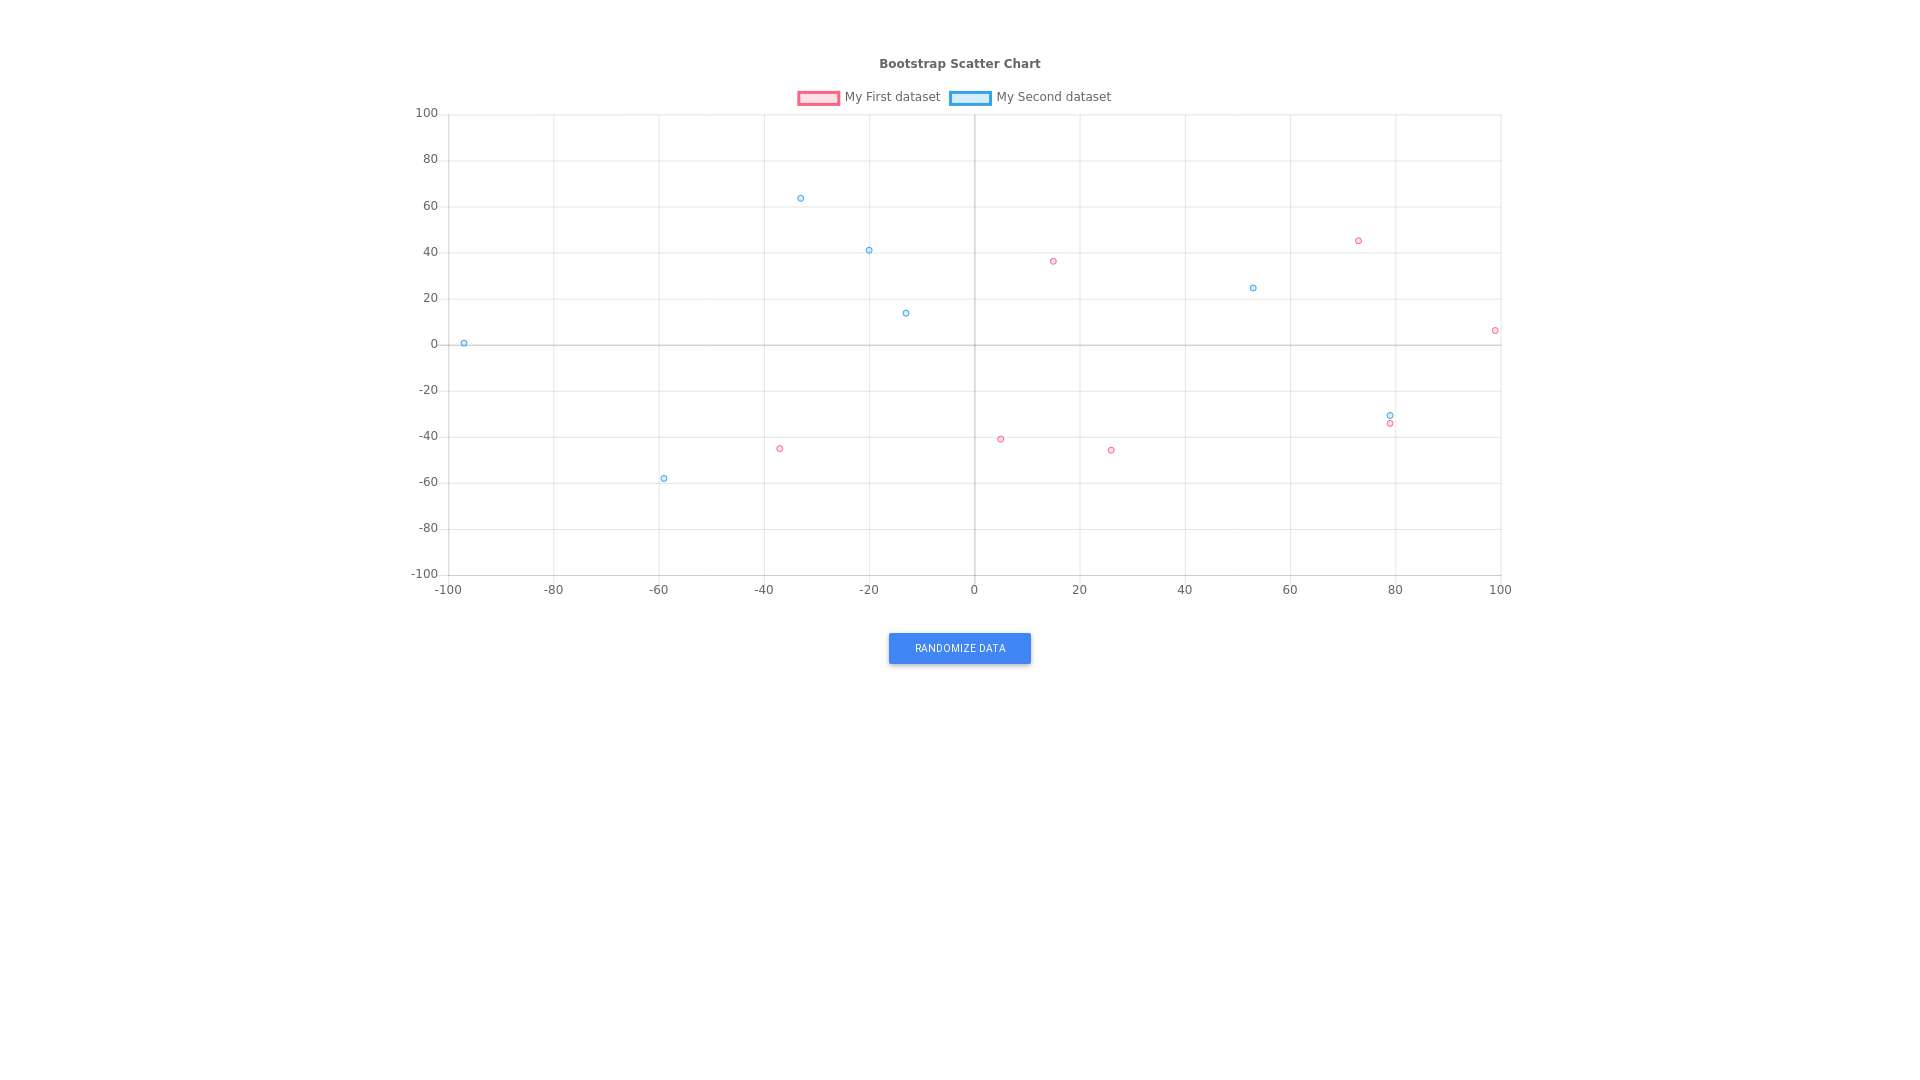 Bootstrap scatter chart